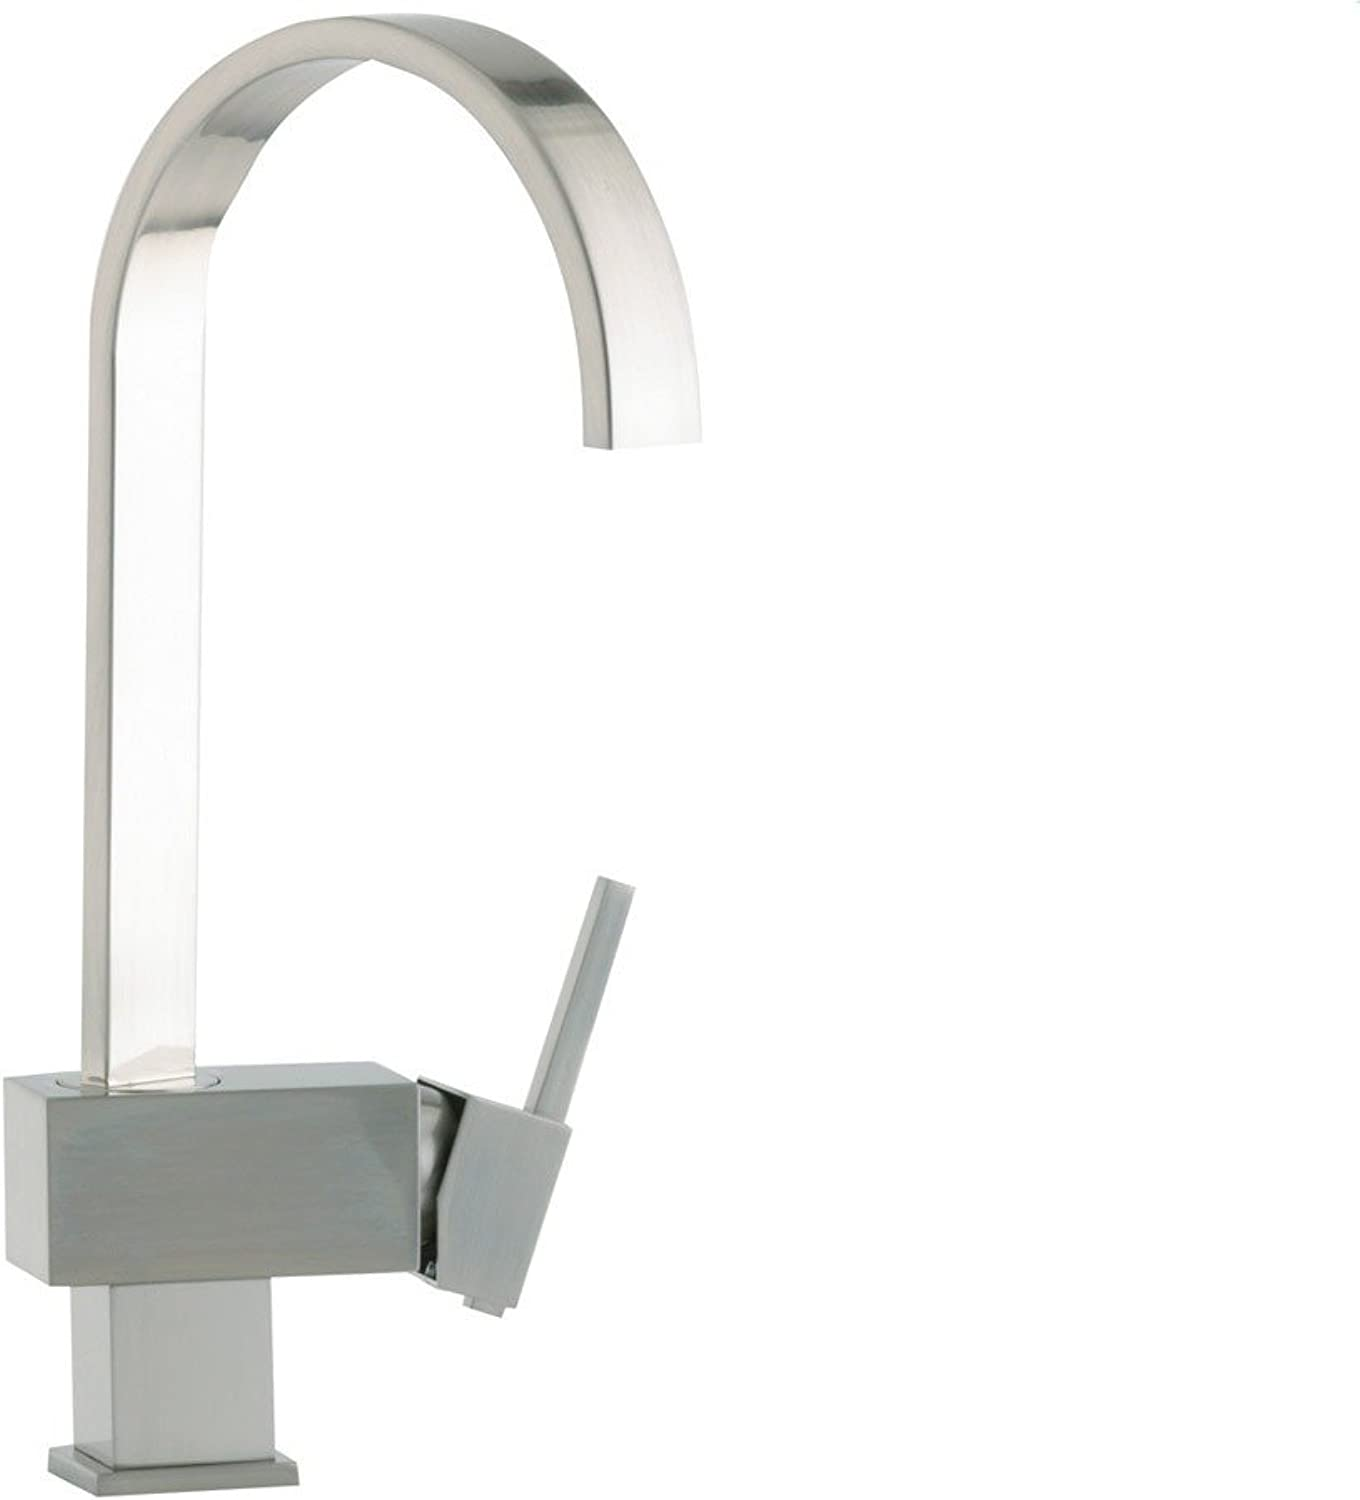 Astracast Indus Brushed Kitchen Sink Mixer Tap